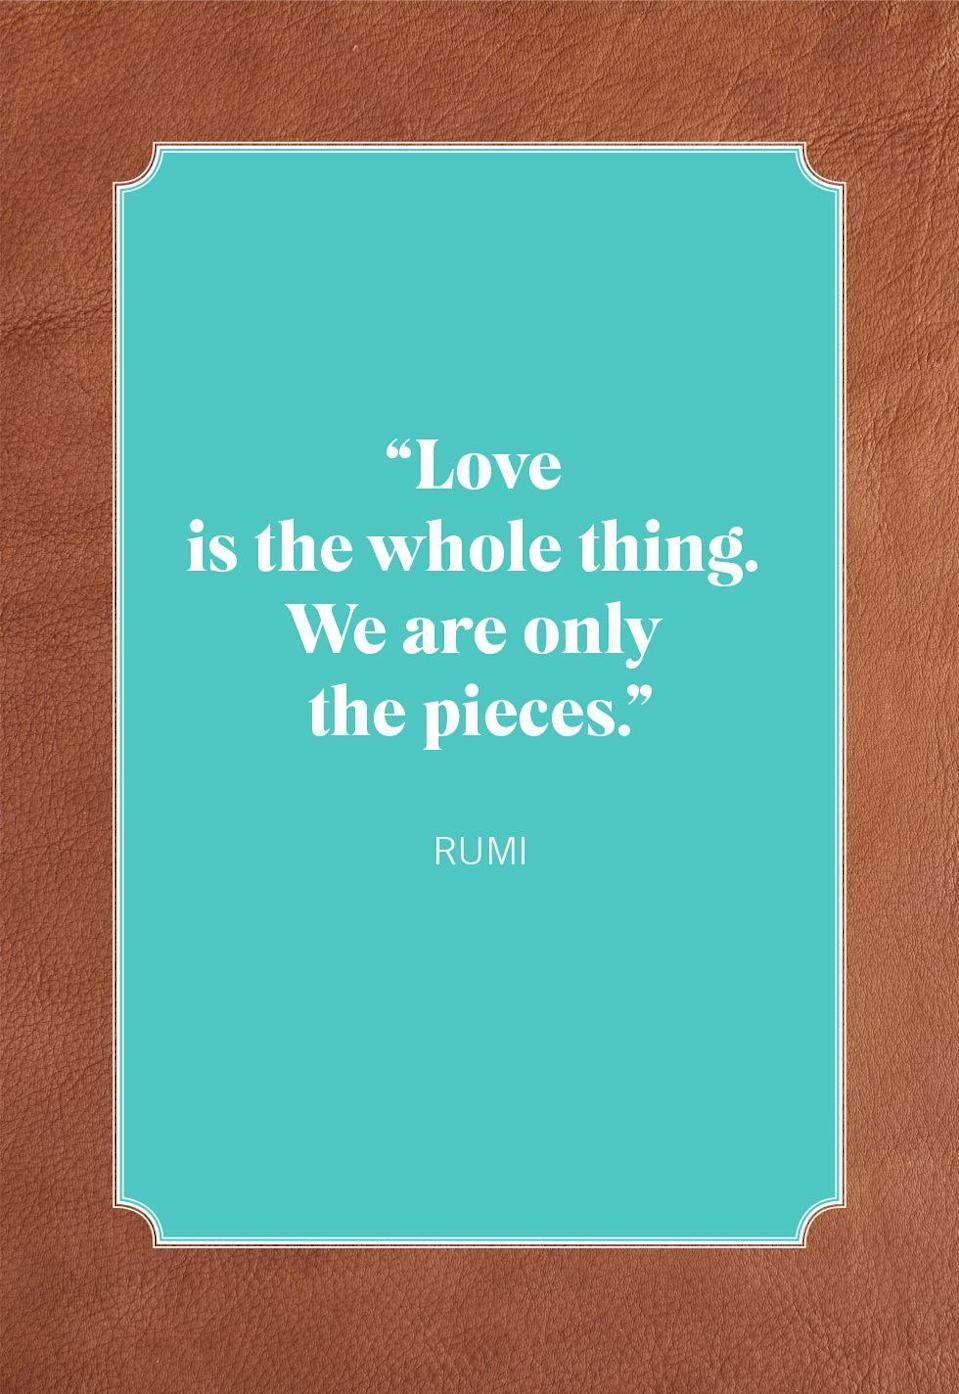 "<p>""Love is the whole thing. We are only the pieces.""</p>"